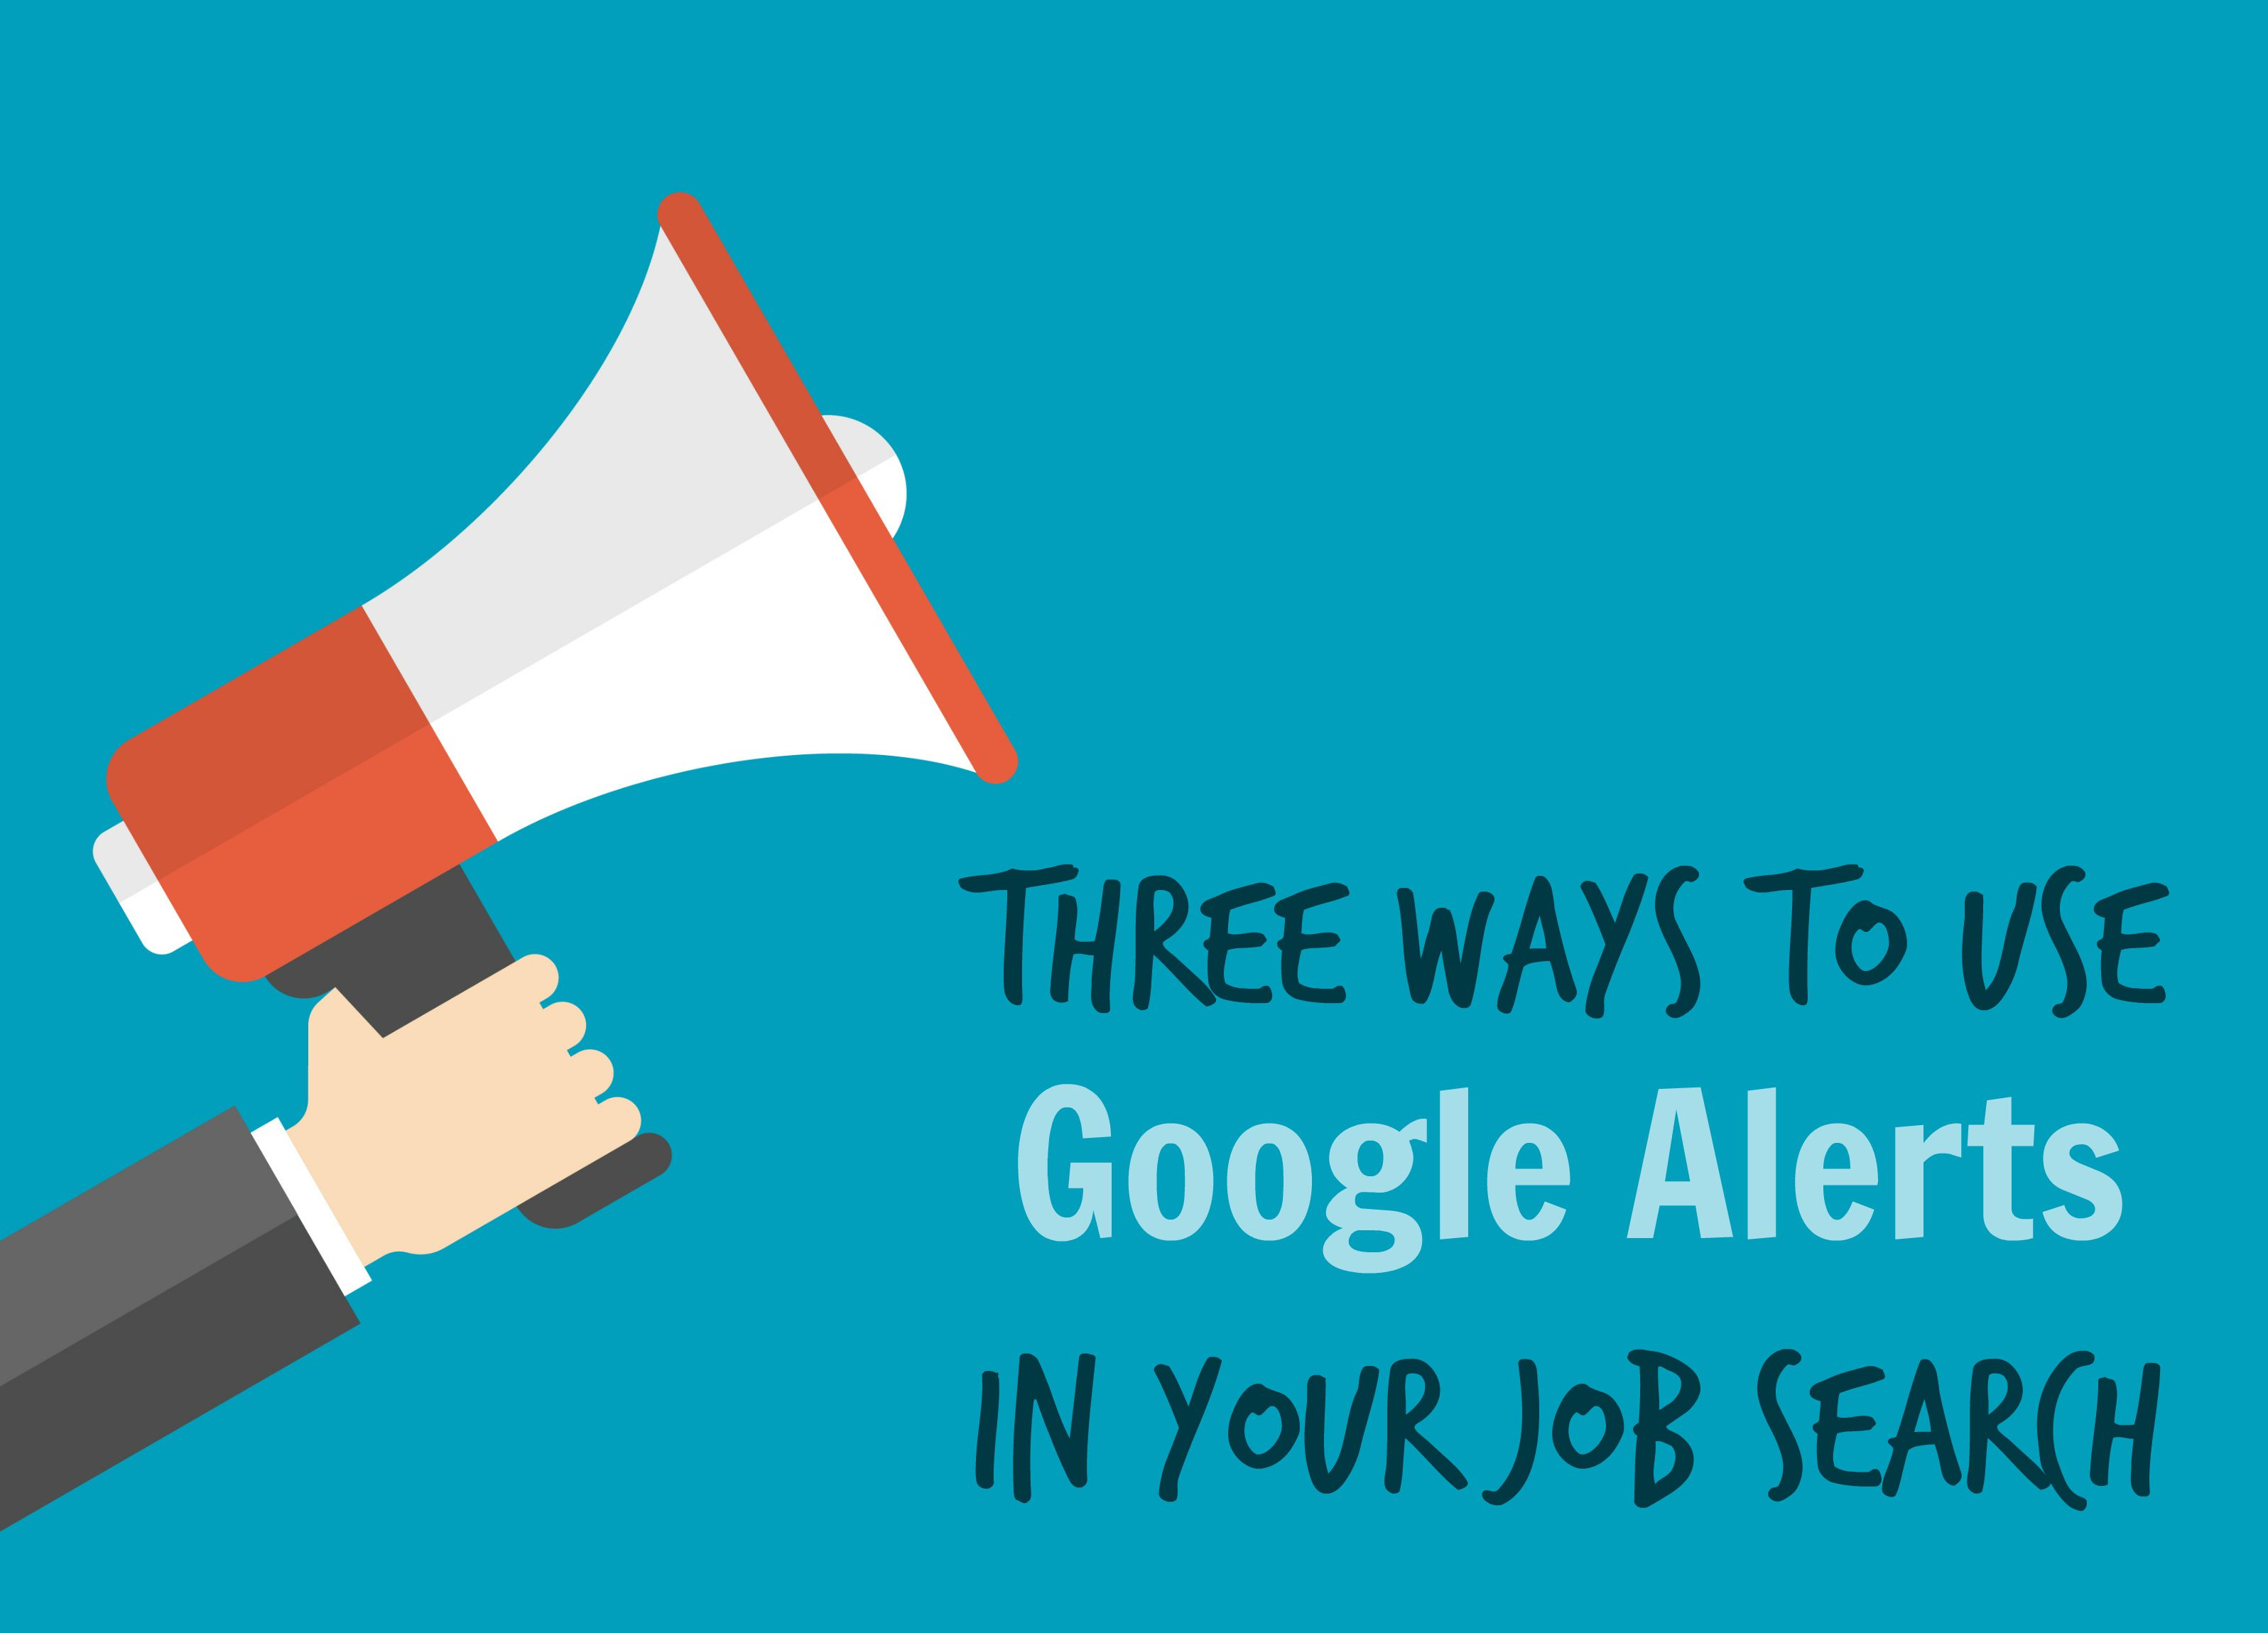 Three ways to use Google Alerts in your job search